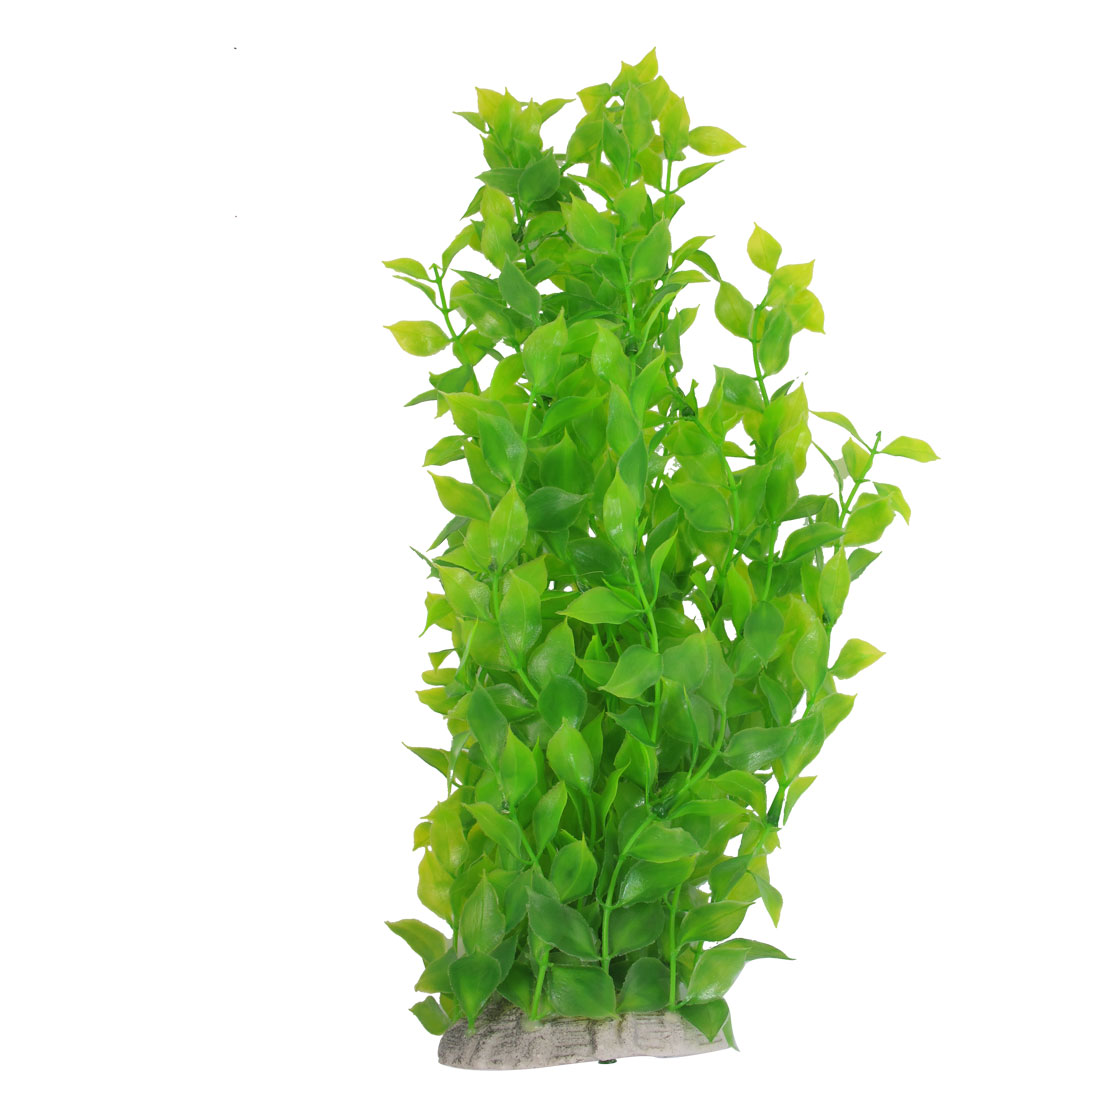 40cm Length Fish Tank Aquarium Ornament Plastic Green Leaves Plant by